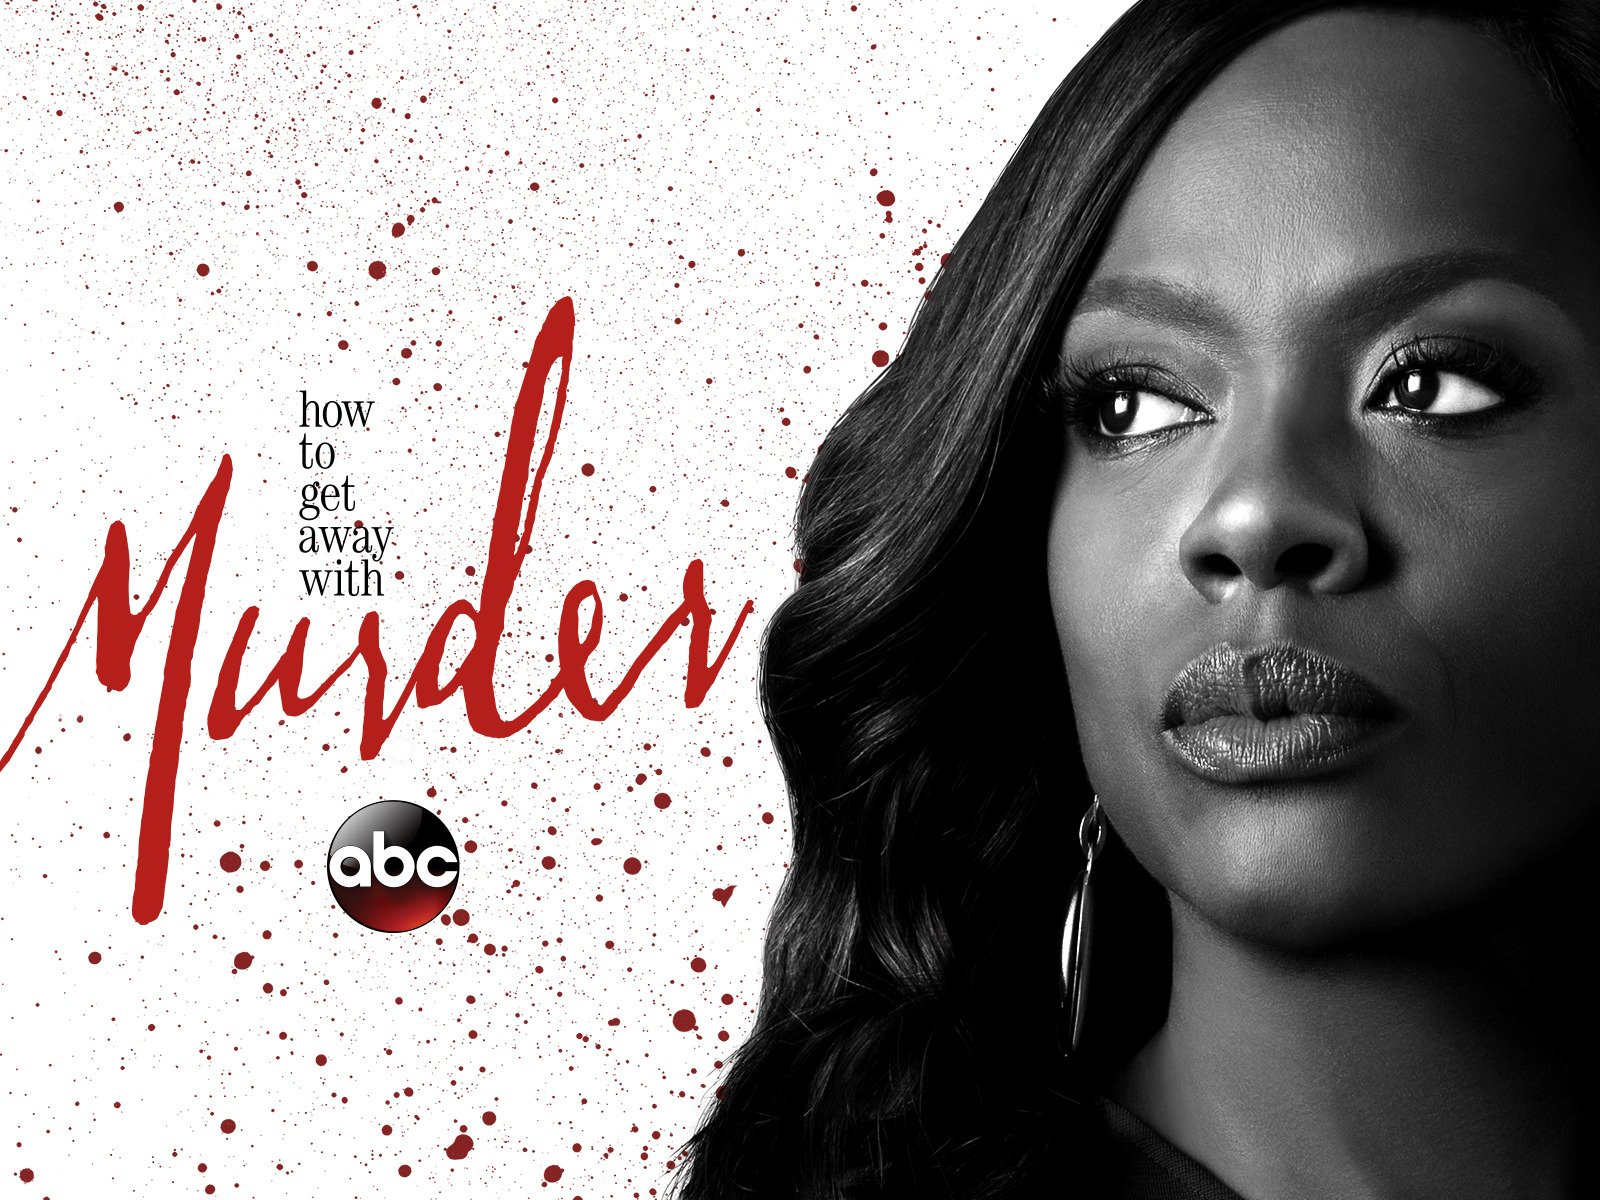 download how to get away with murder season 3 episode 13